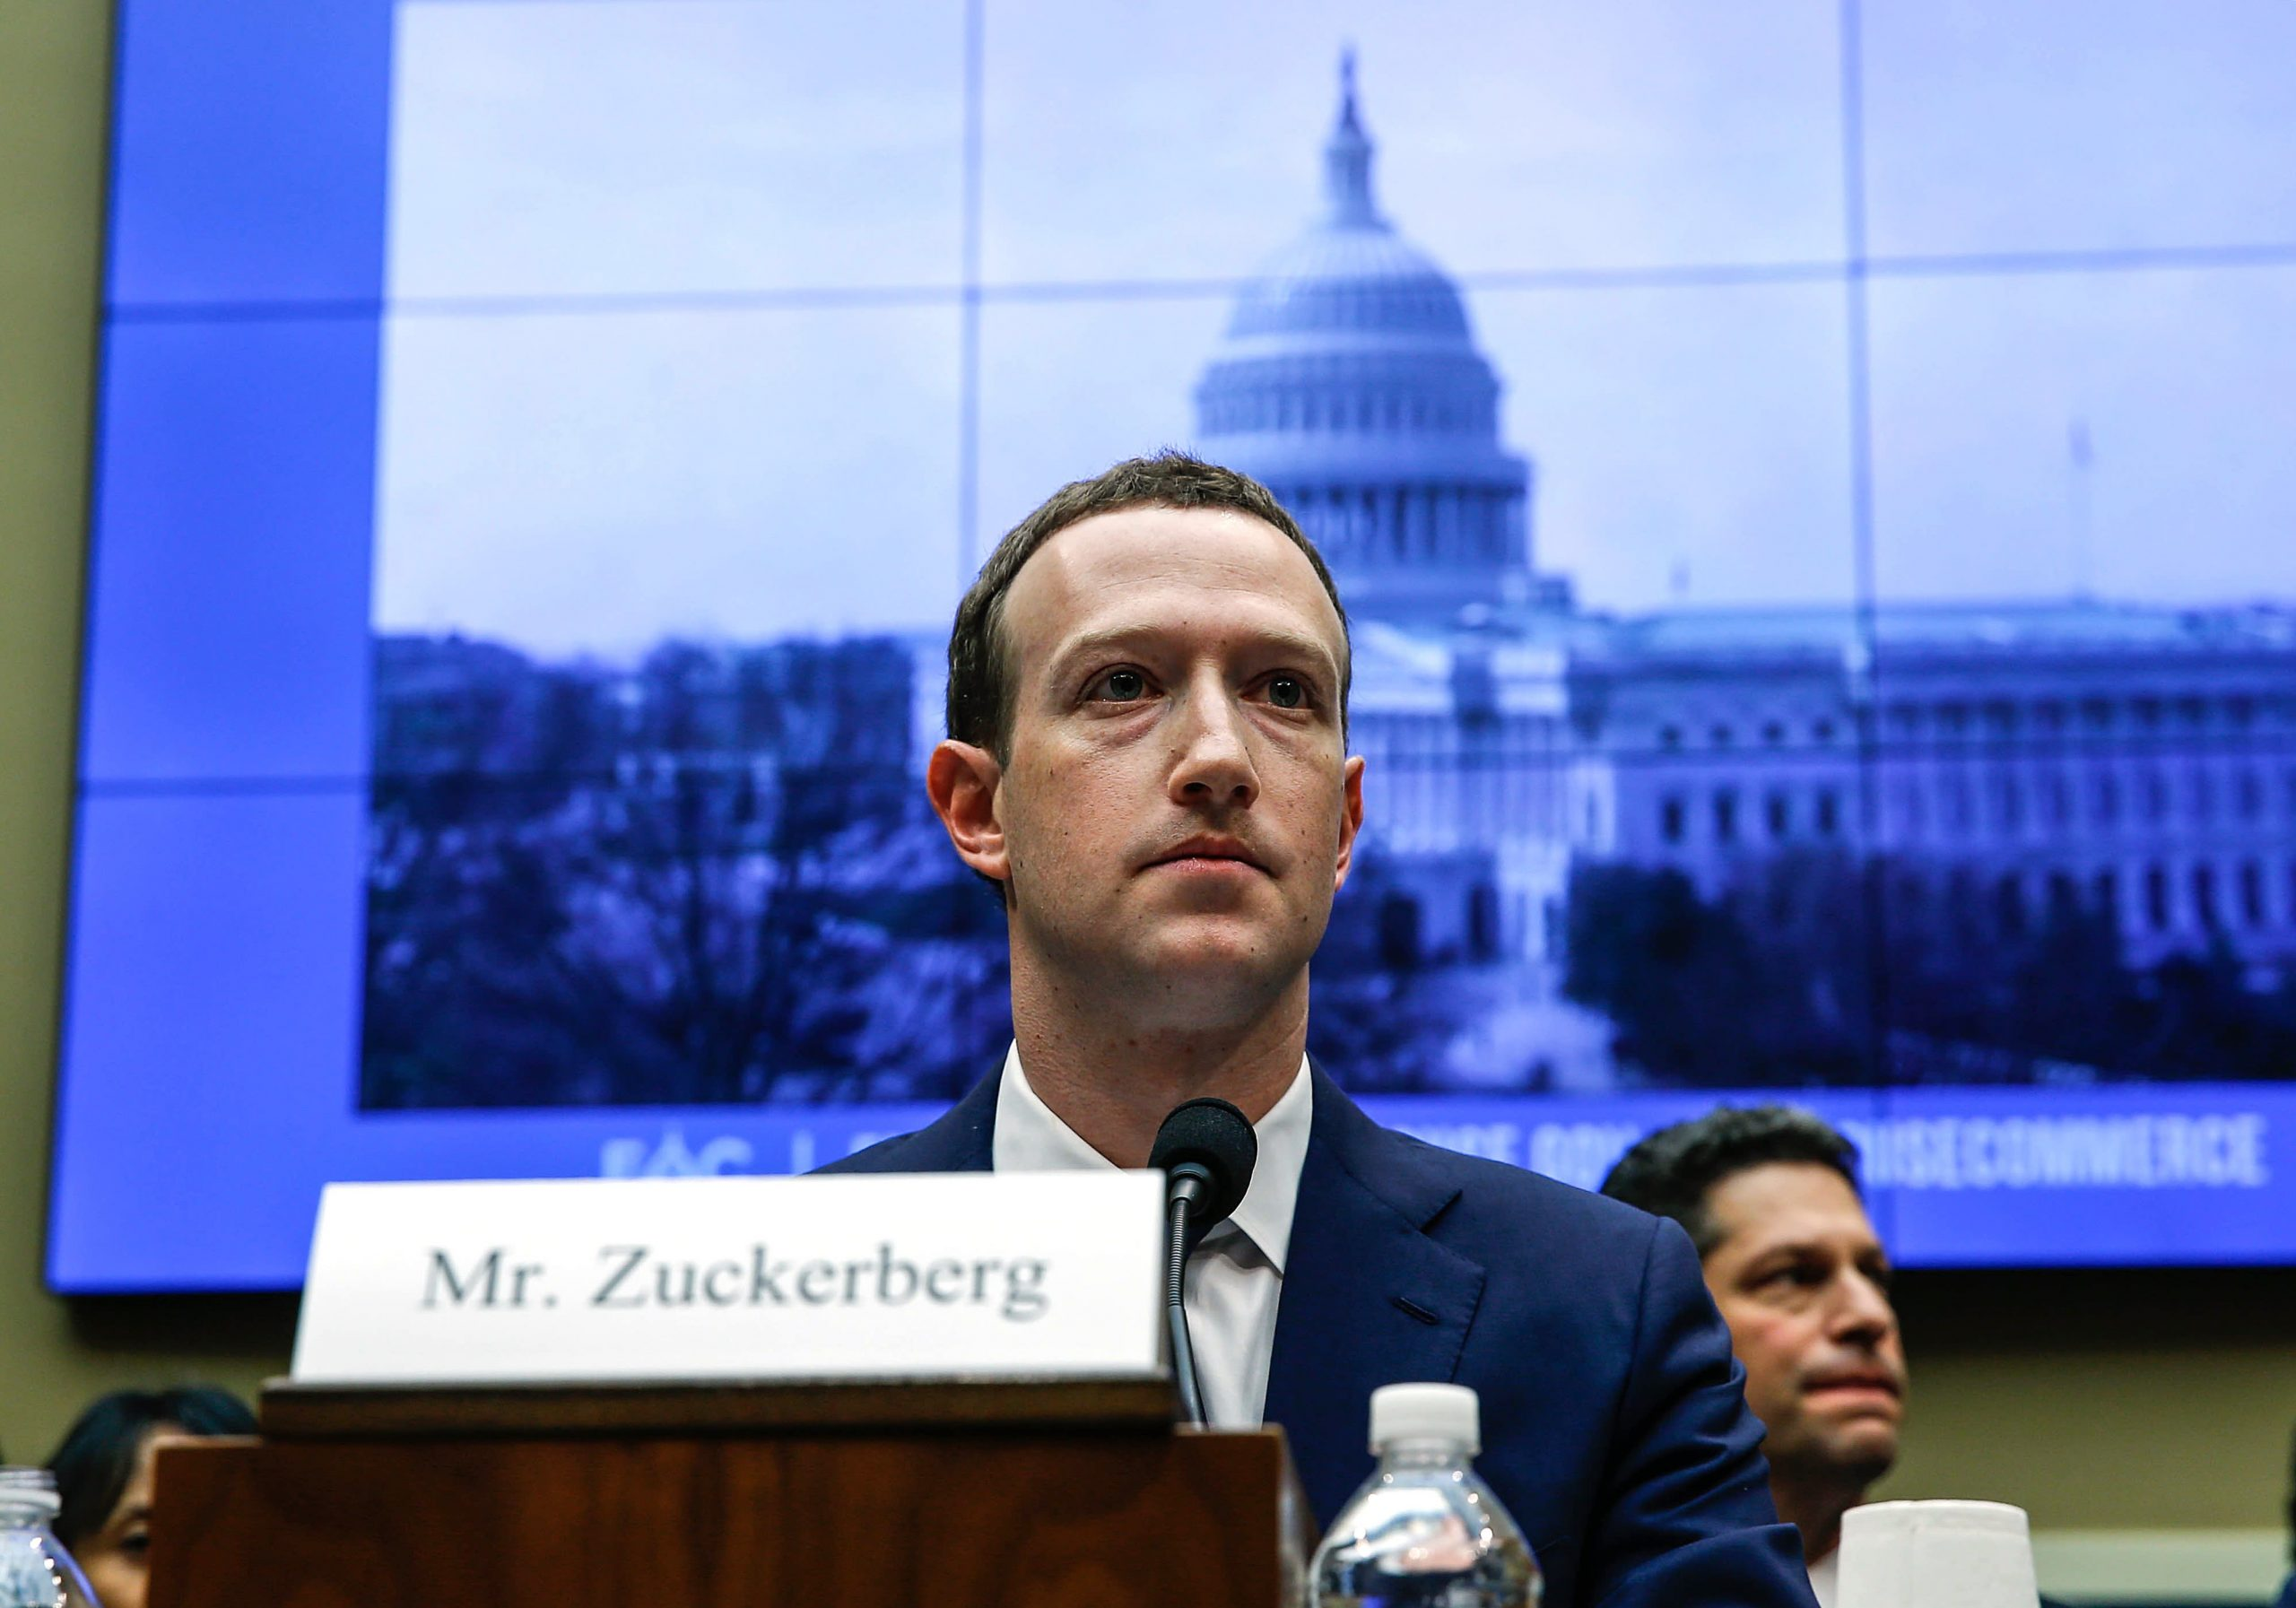 Zuckerberg says Facebook will show 'authoritative' info about Covid-19 vaccines